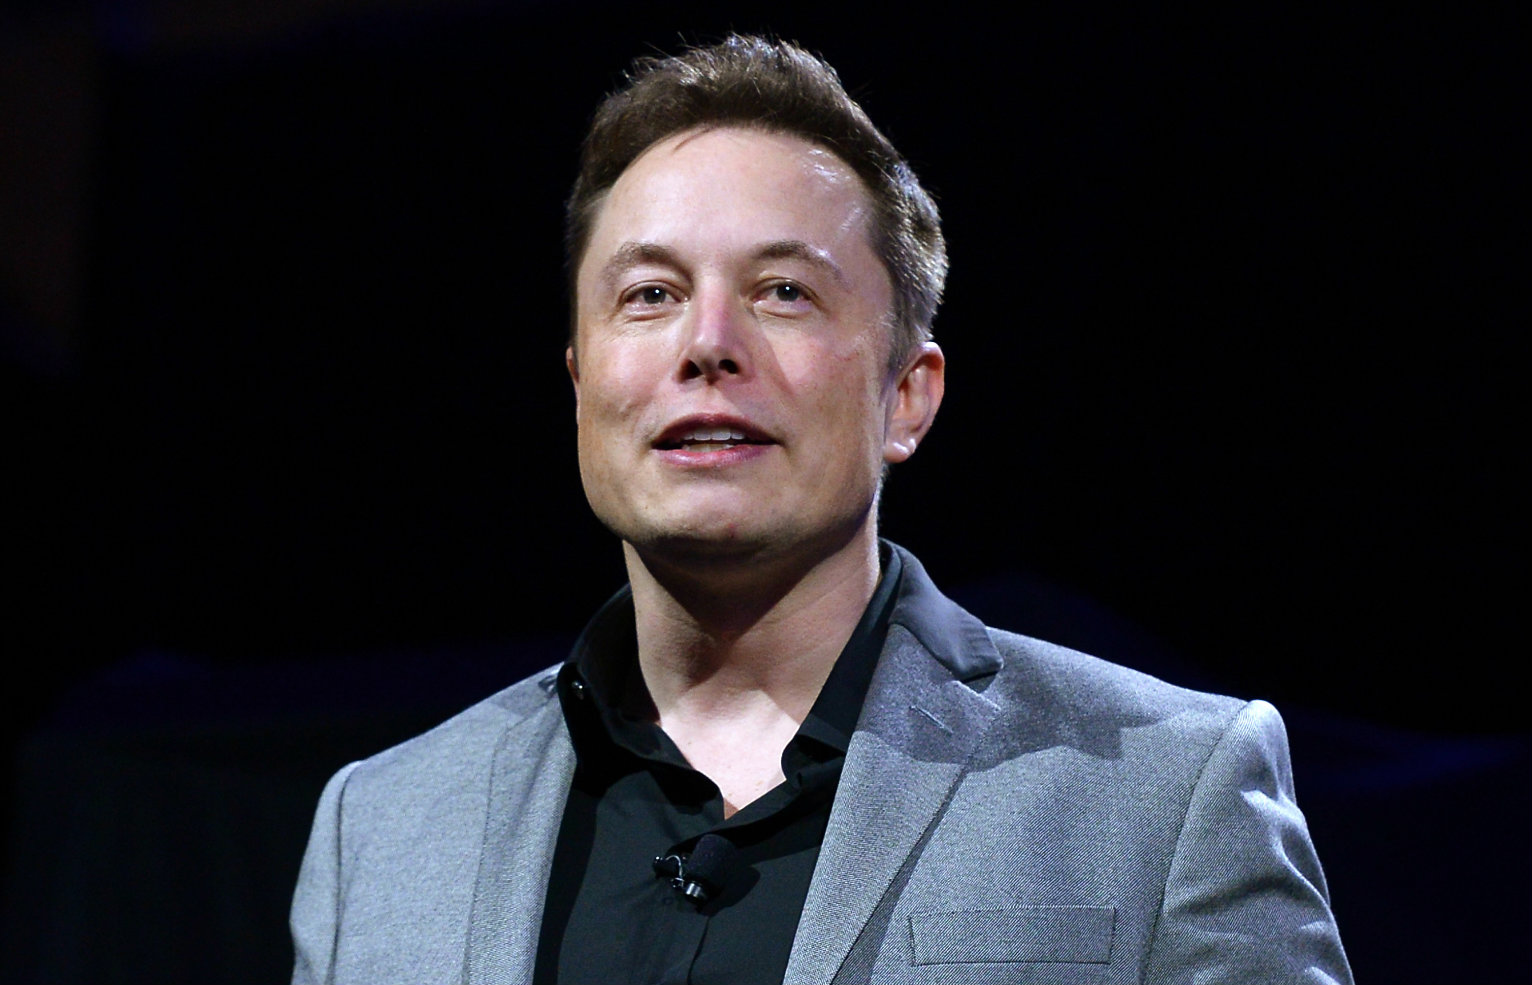 10 Things You Didn't Know About Elon Musk | National News | US News